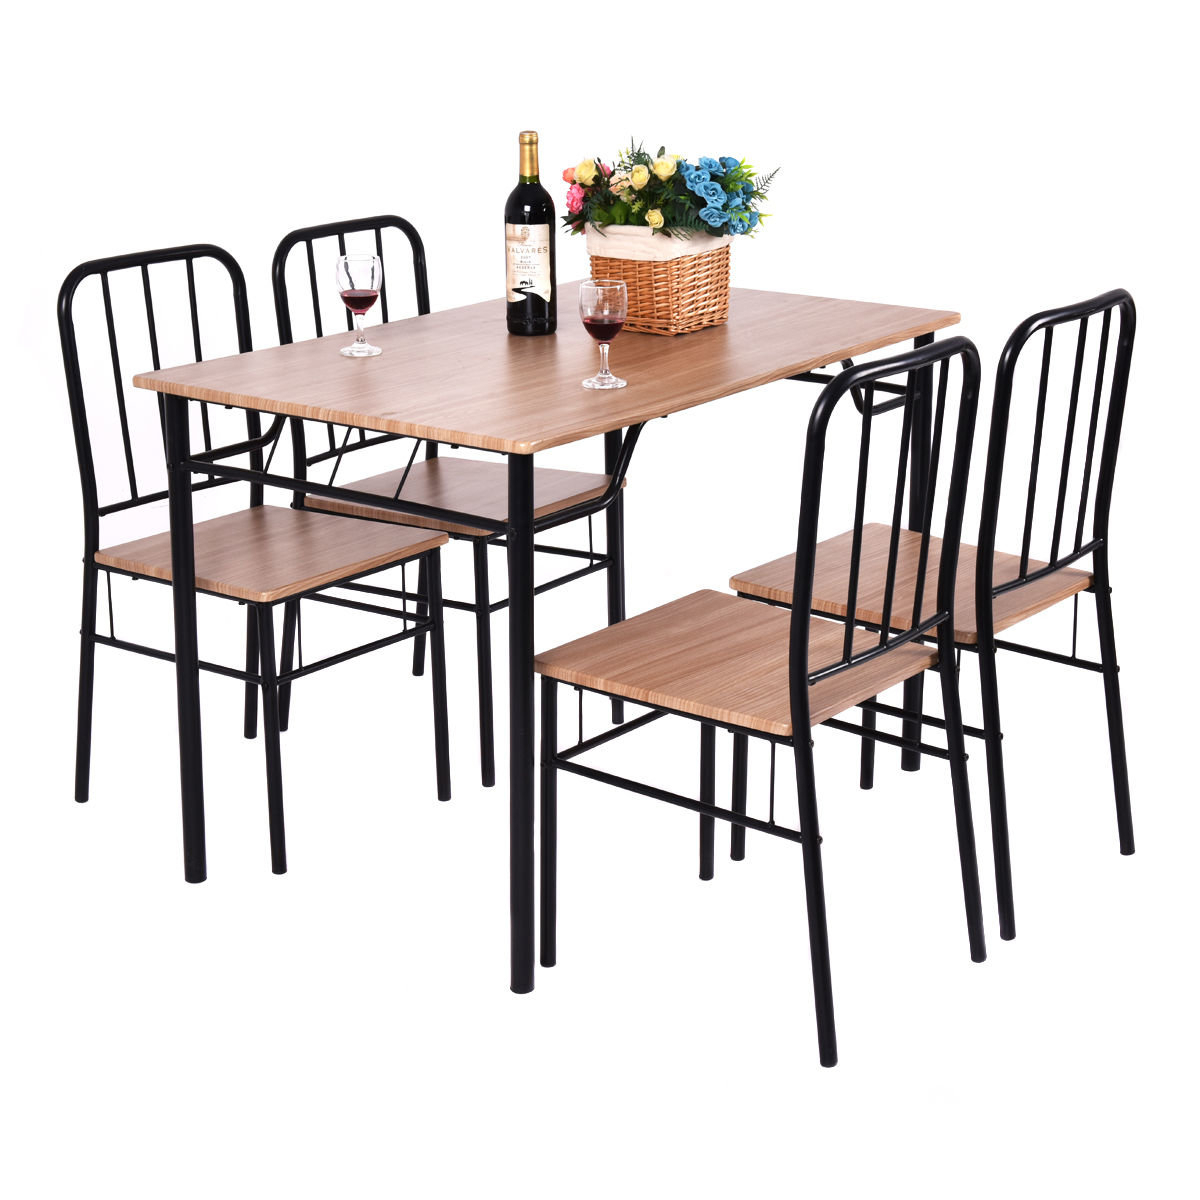 Conover 5 Piece Dining Set Throughout Recent Conover 5 Piece Dining Sets (Photo 1 of 20)